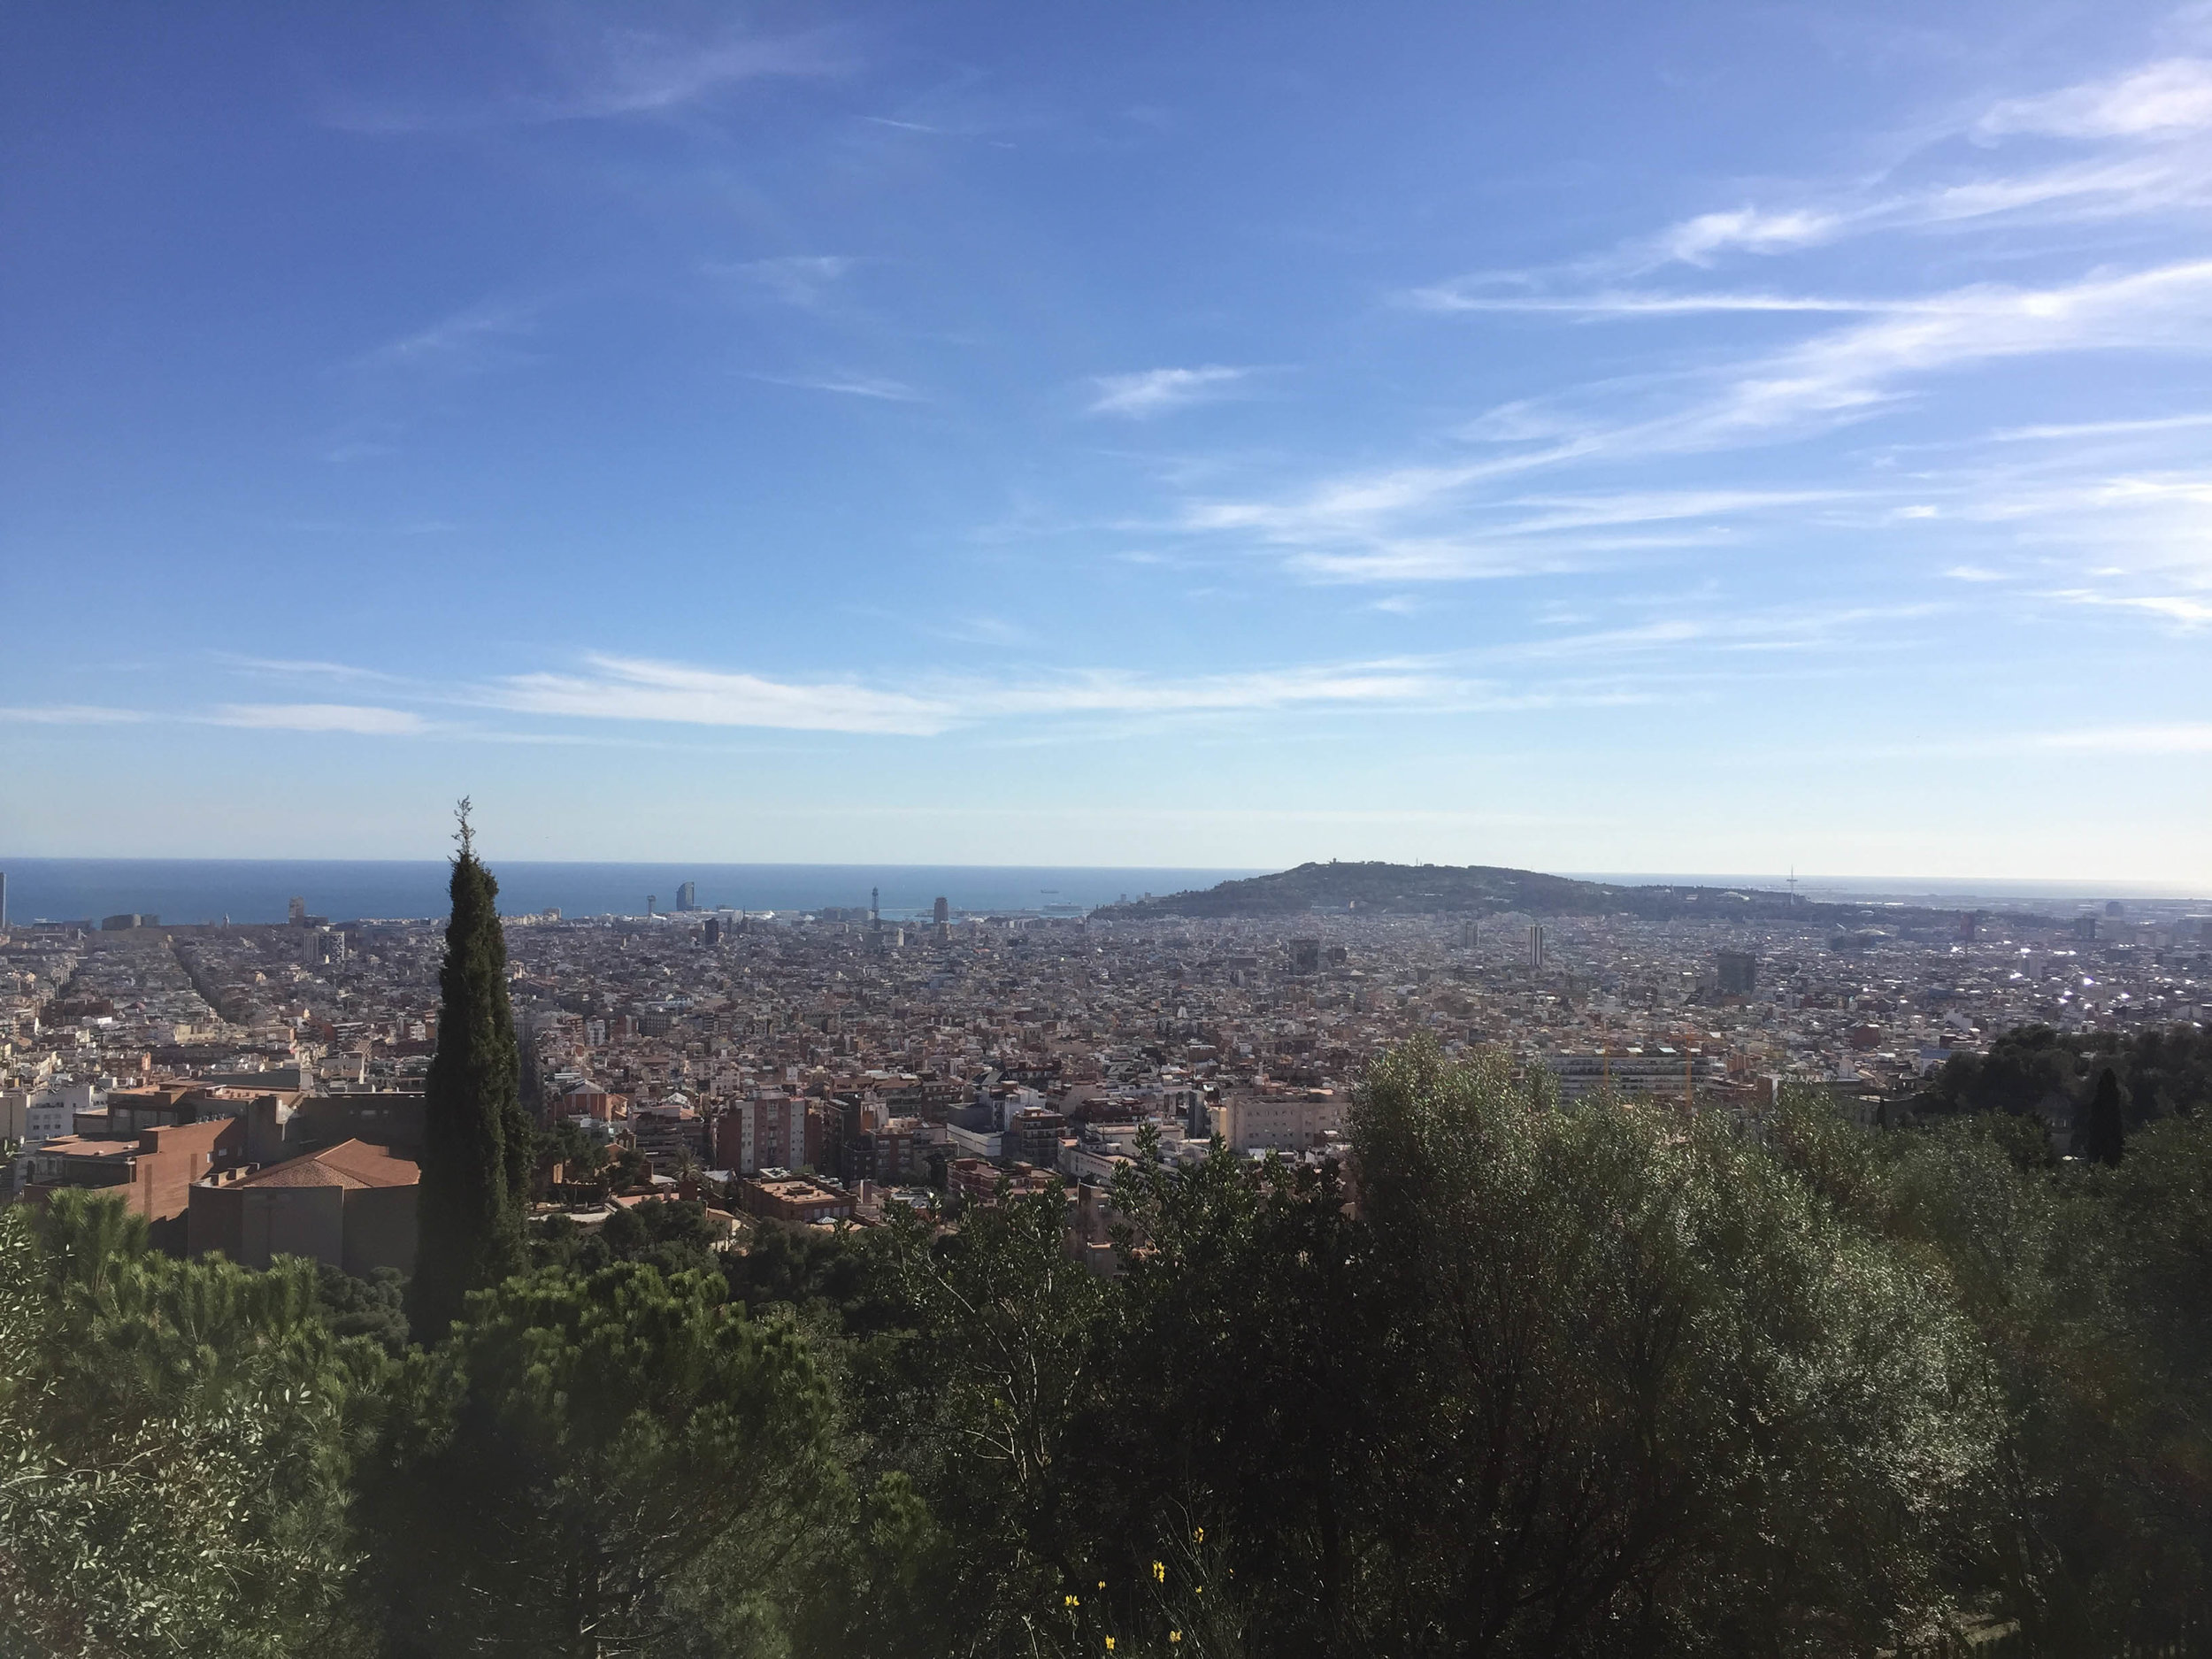 The view from the top of Parc Guell